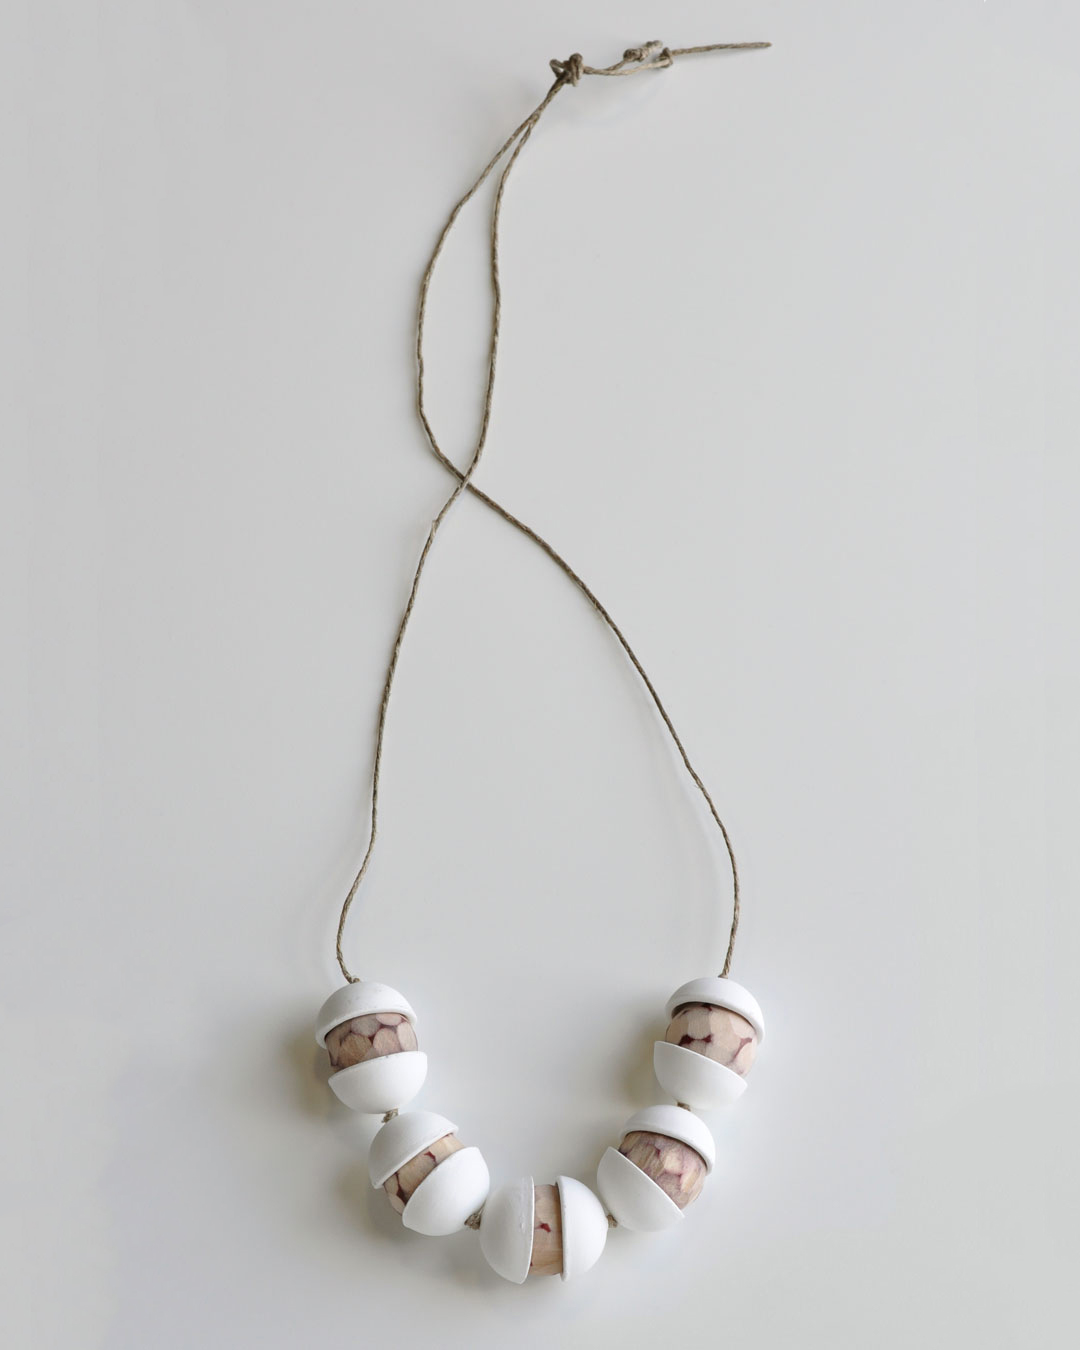 Chequita Nahar, Alla Kondre, 2010, necklace; porcelain, pine, string, 408 x 142 x 30 mm, €640